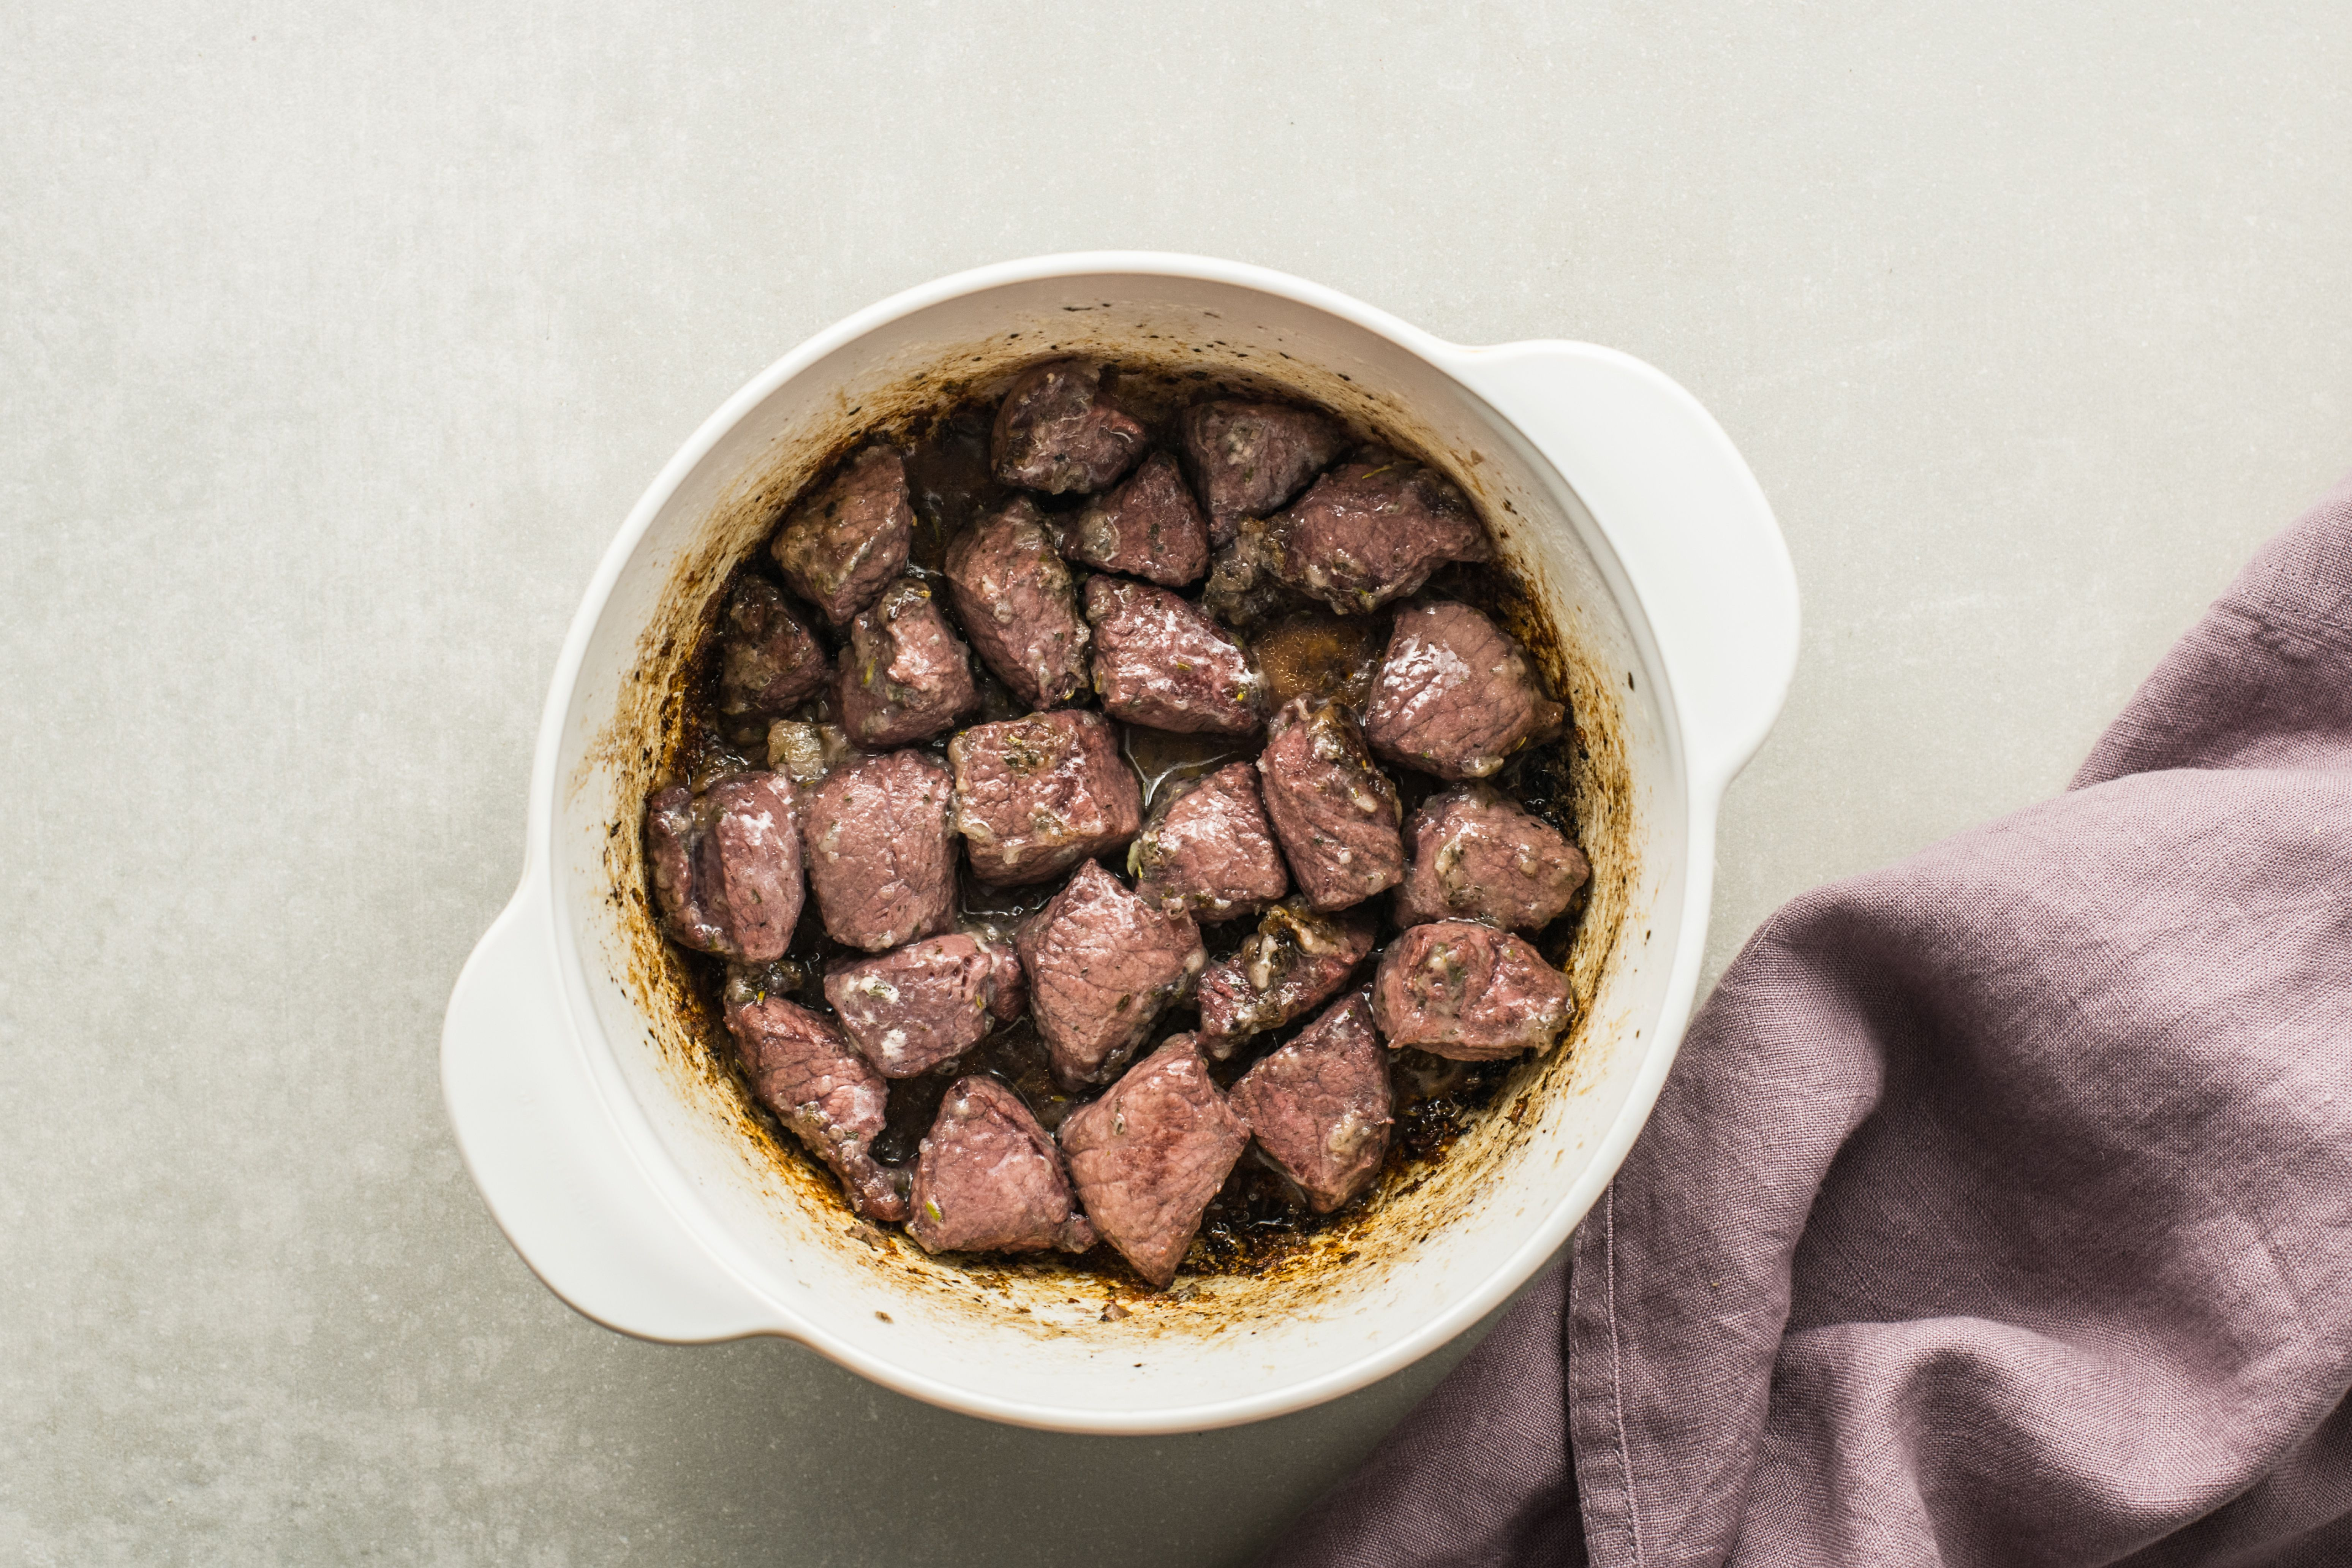 Venison tossed with flour and cooking in remaining bacon grease